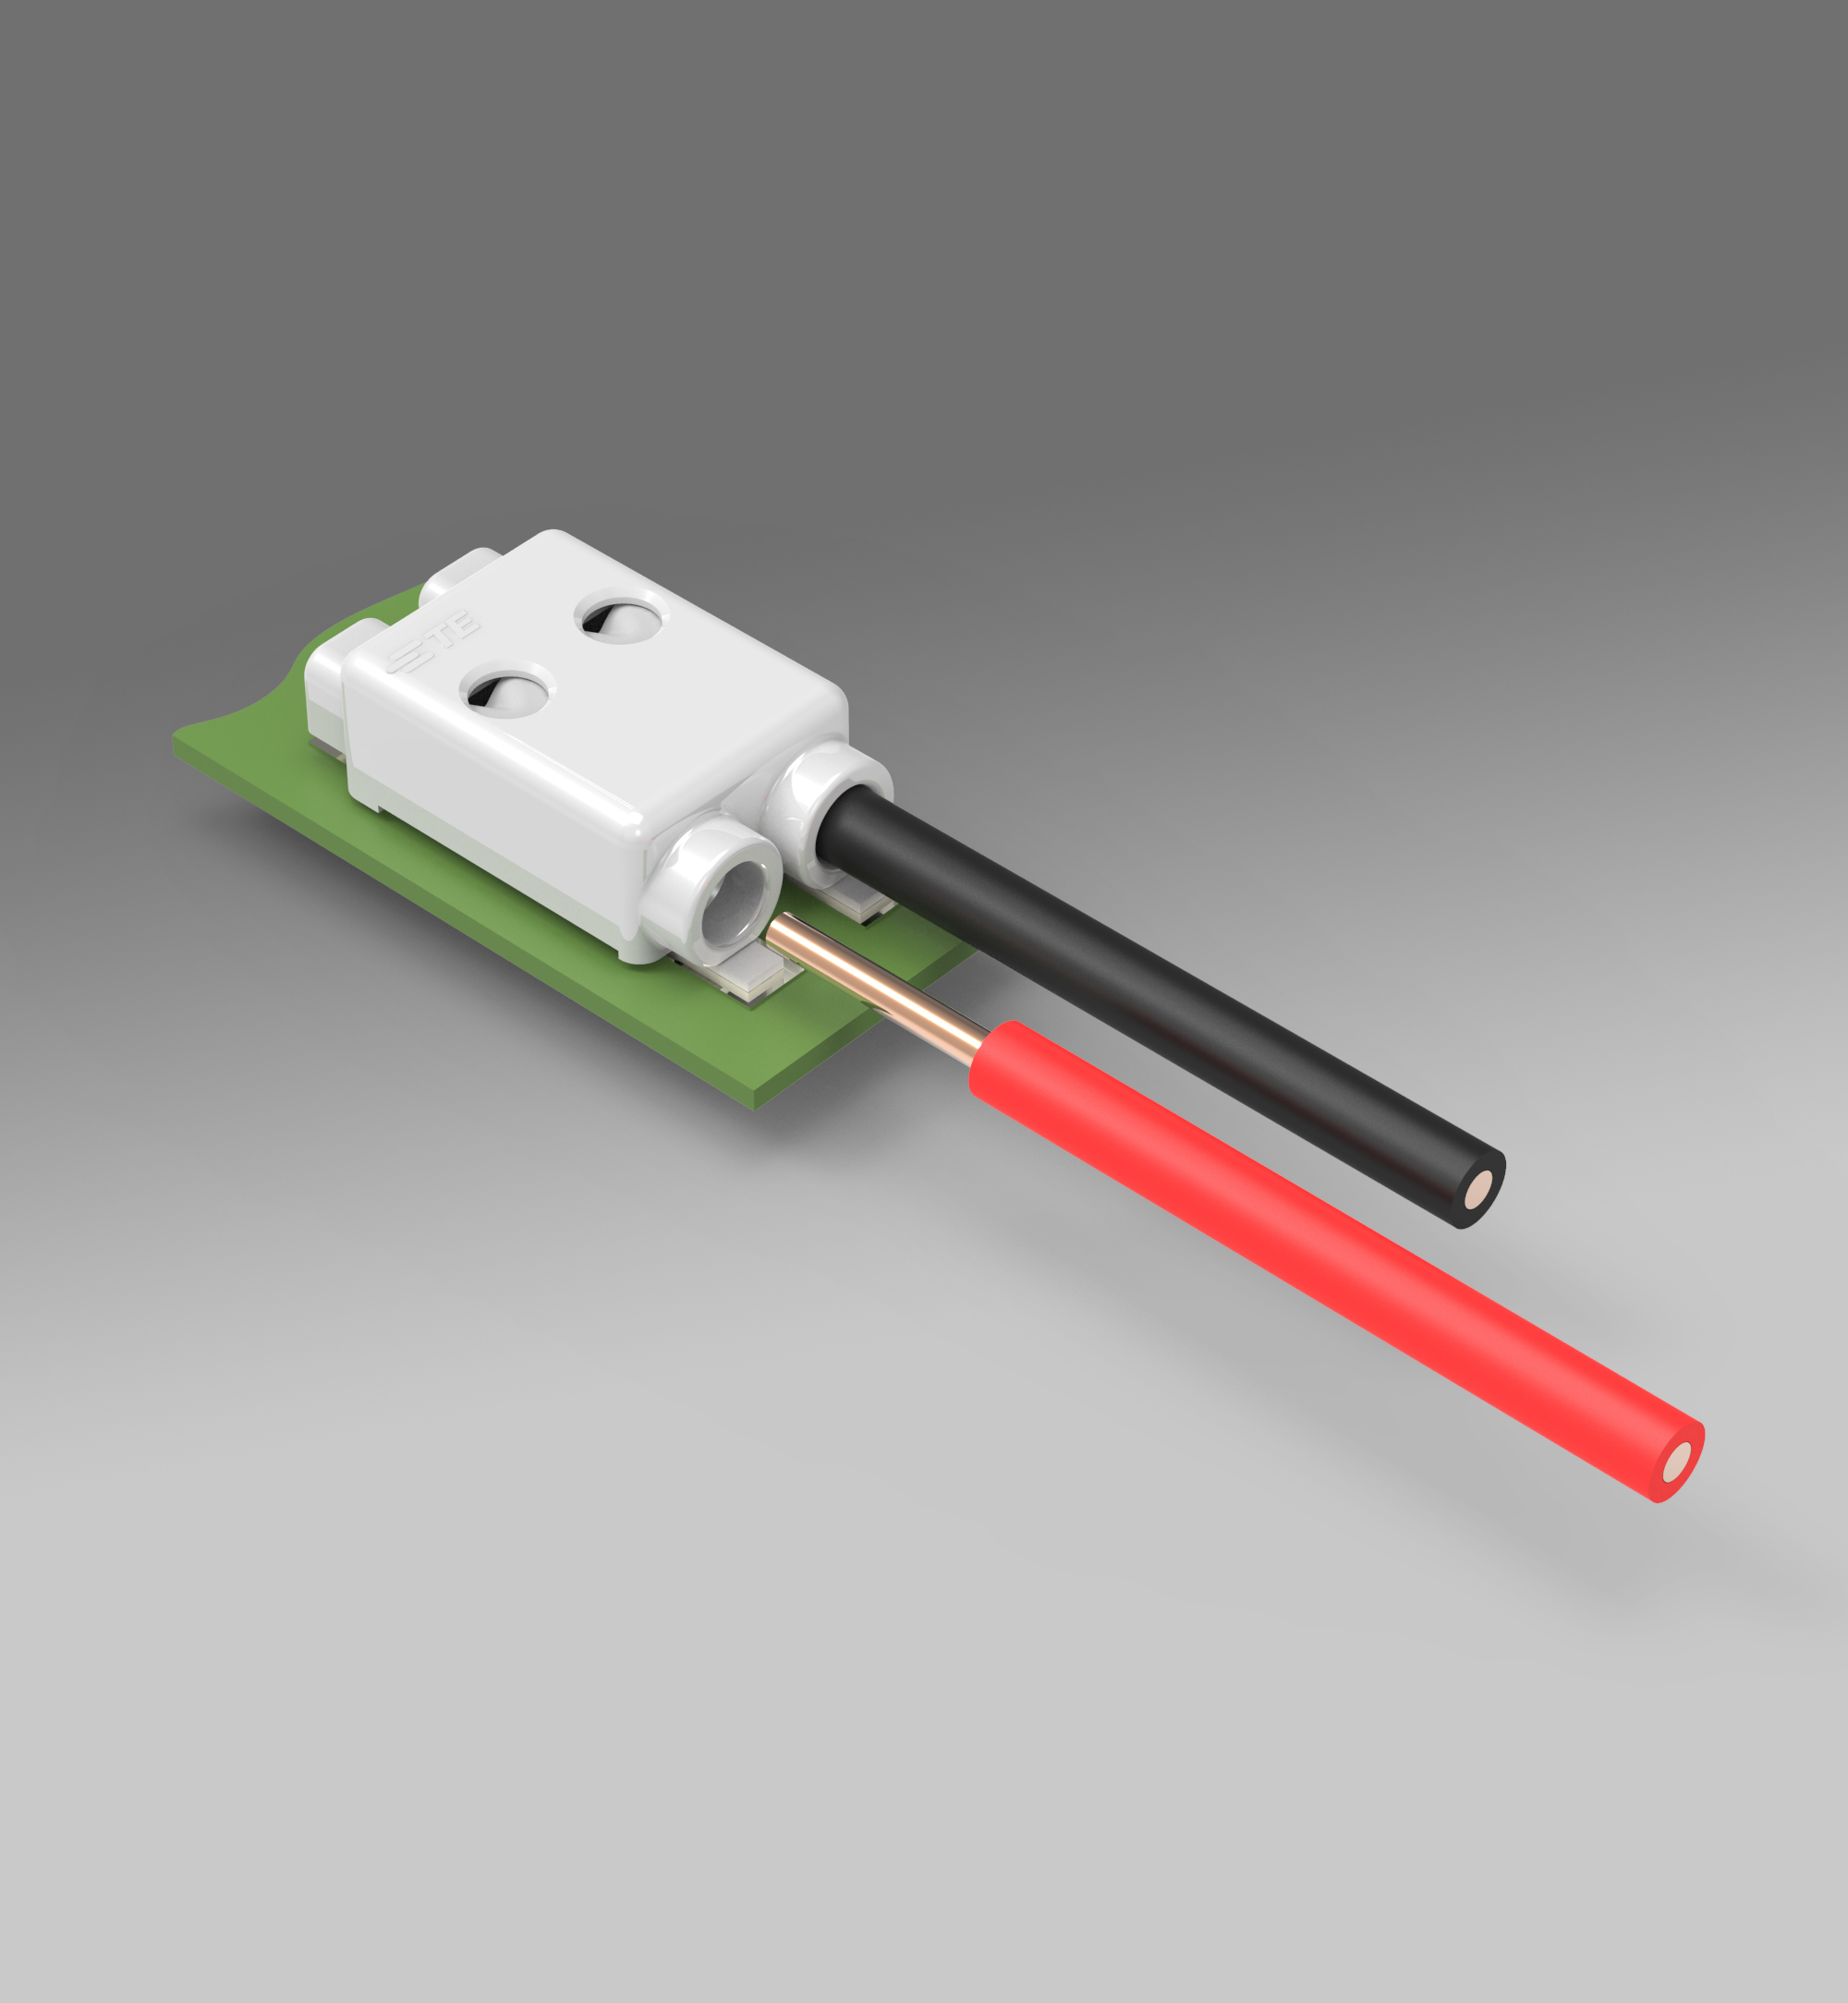 Releasable Poke-In Wire Connectors